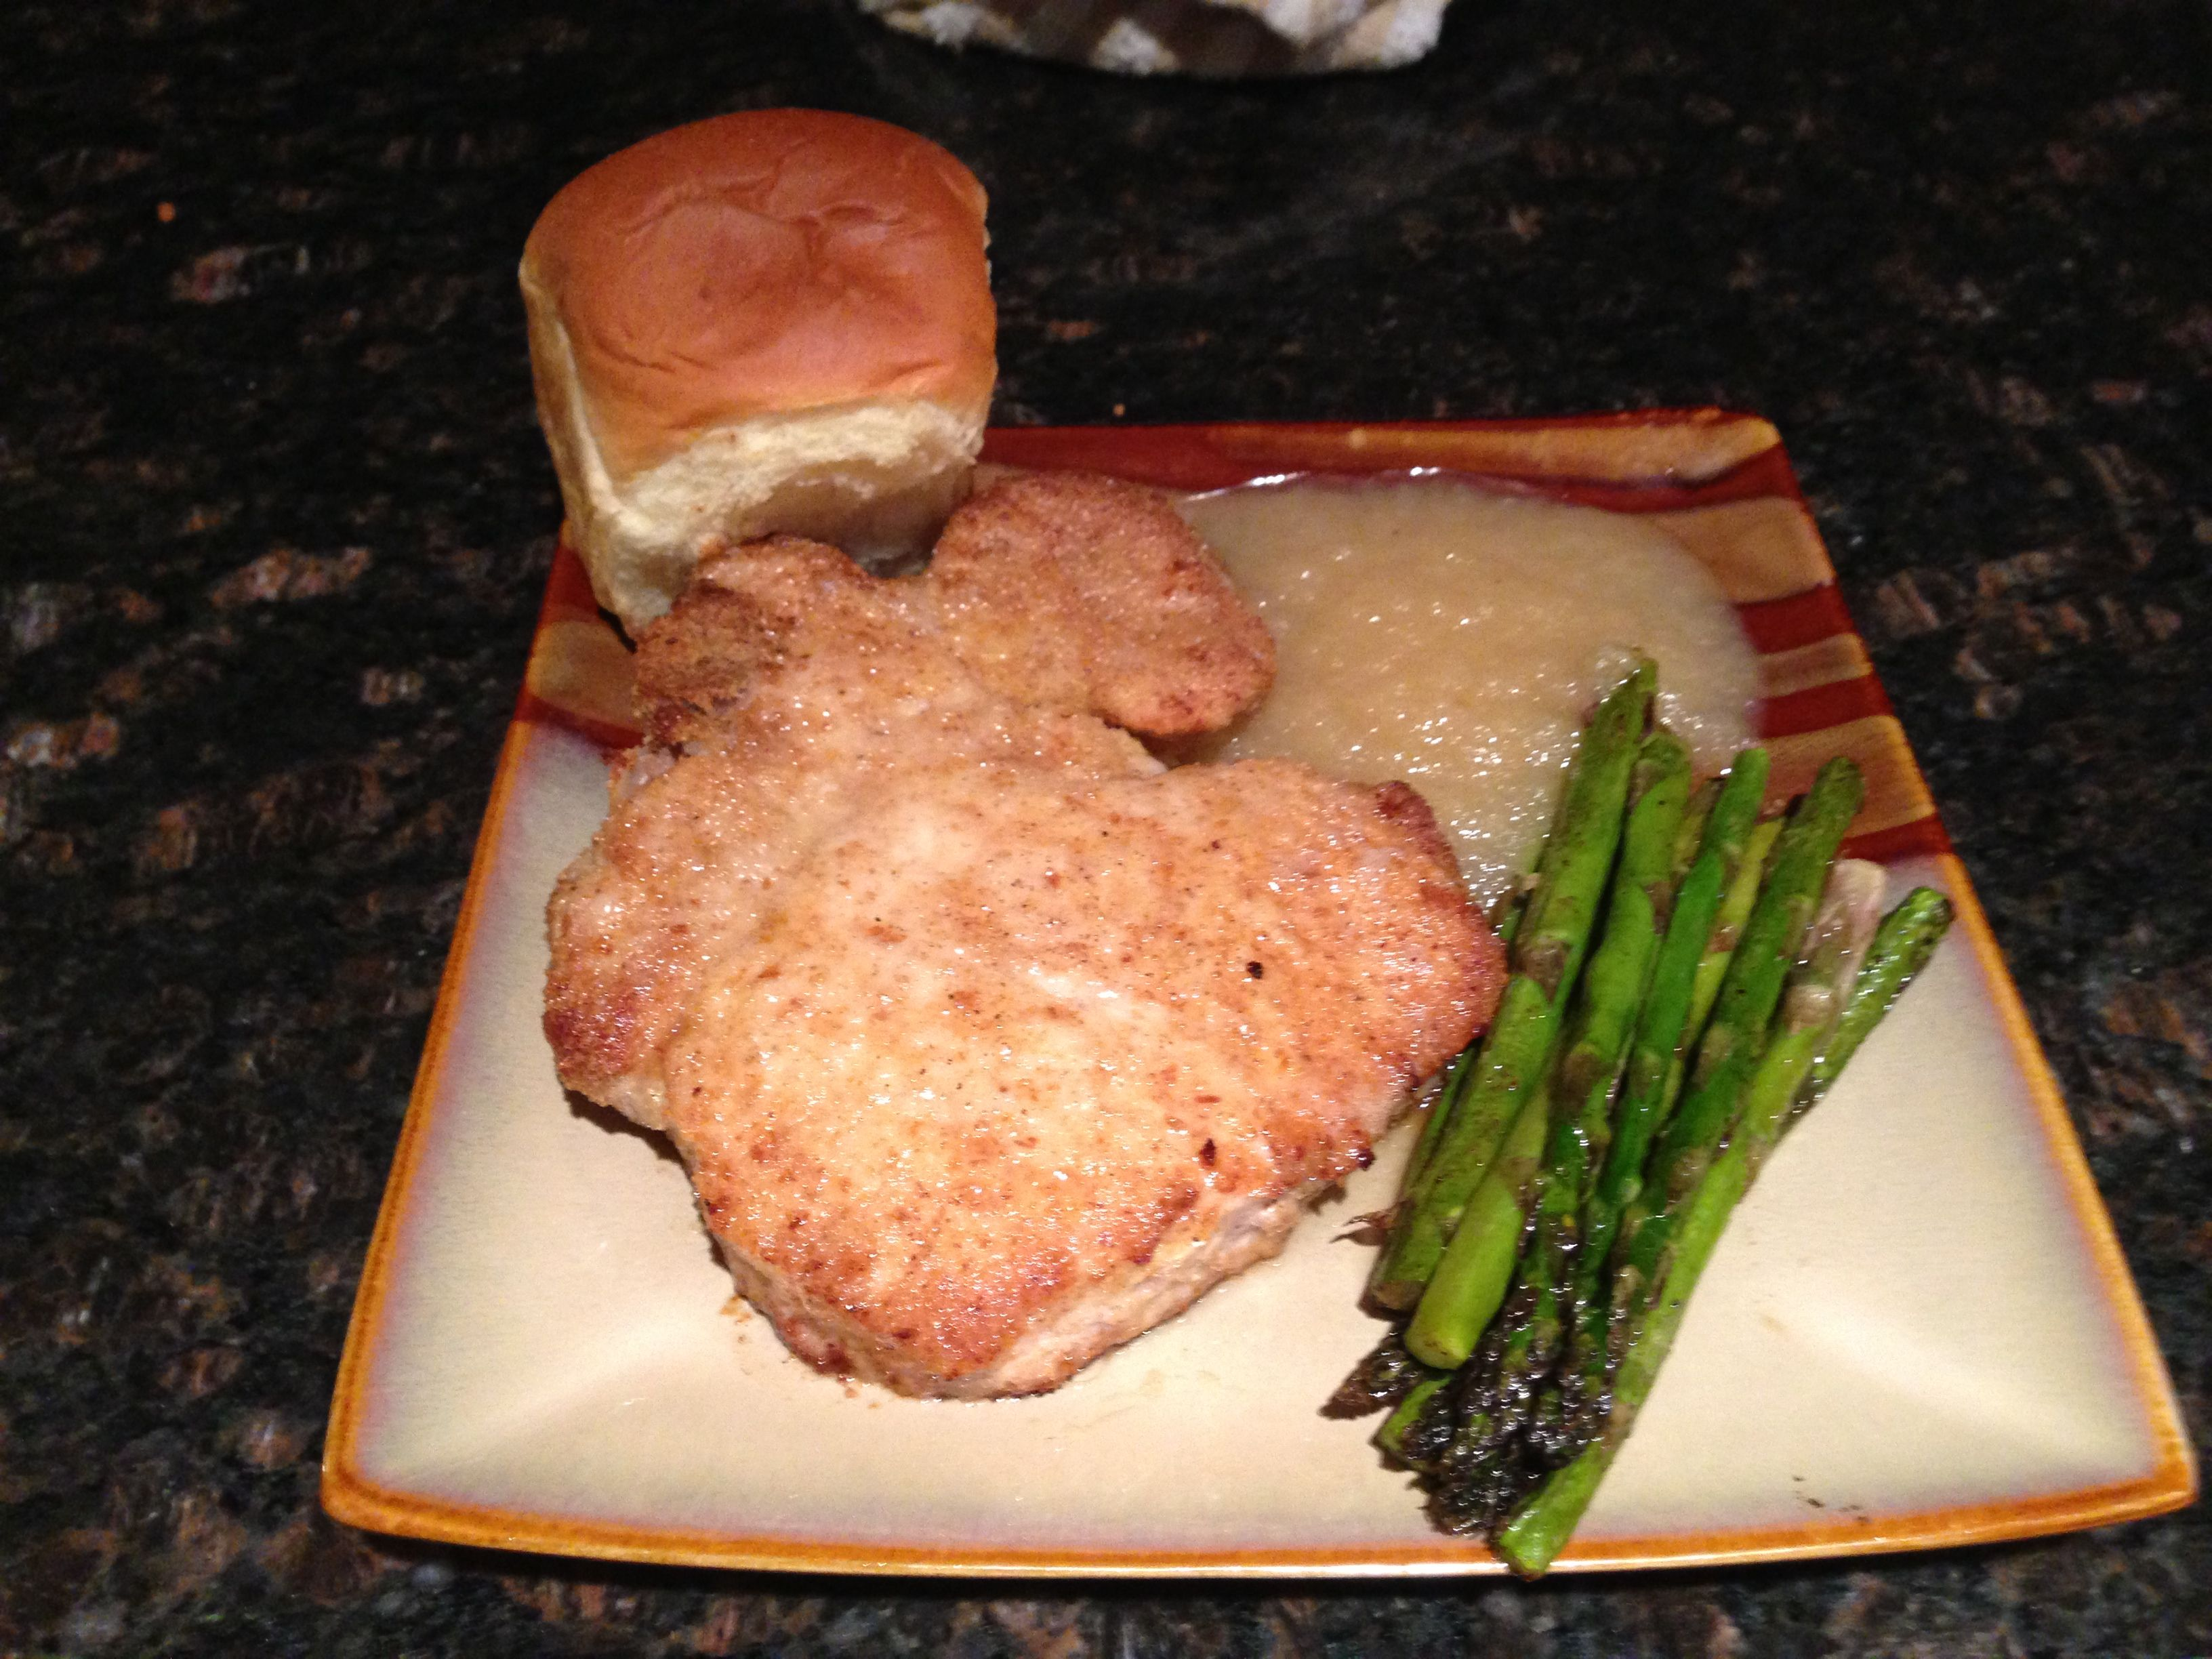 Oven fried pork chop with roasted asparagus, Hawaiian roll, and apple sauce